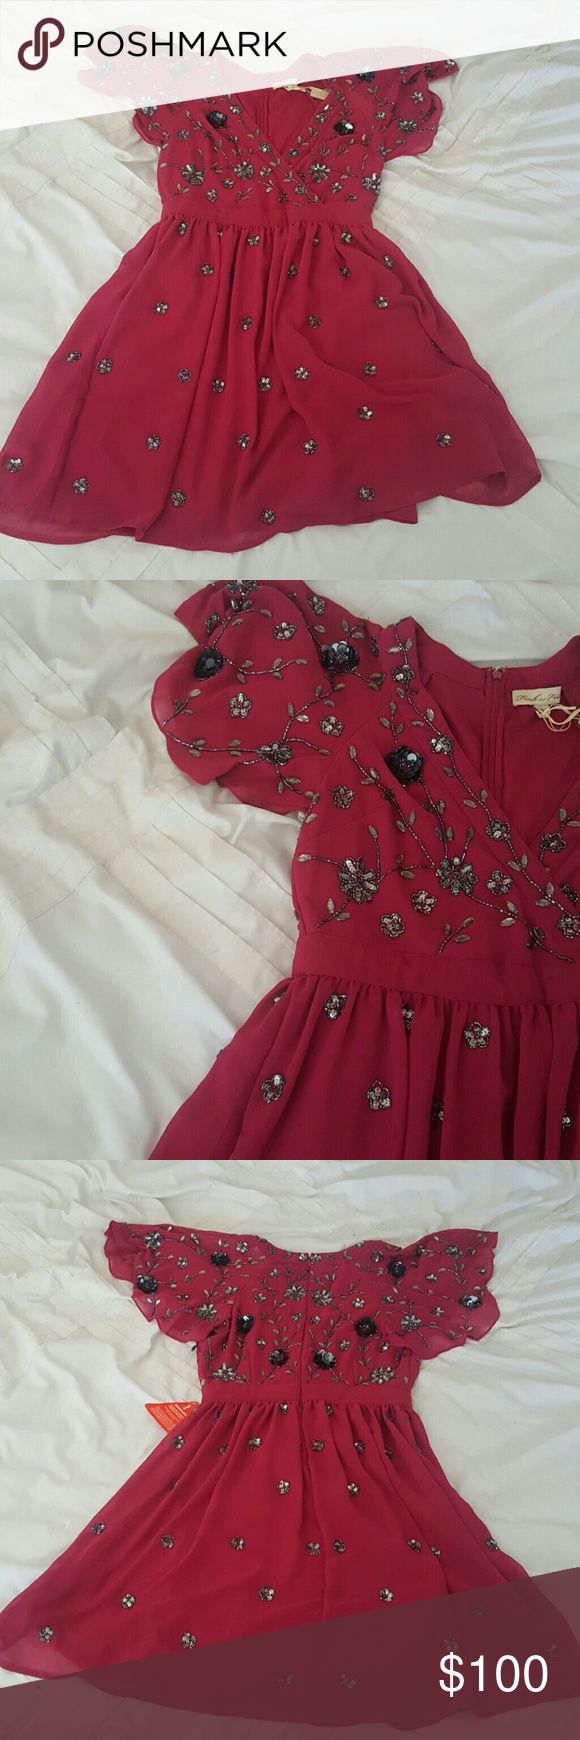 Frock and Frill Embroidered Dress An Embroidered deep fuscia A line dress Frock and Frill Dresses Mini